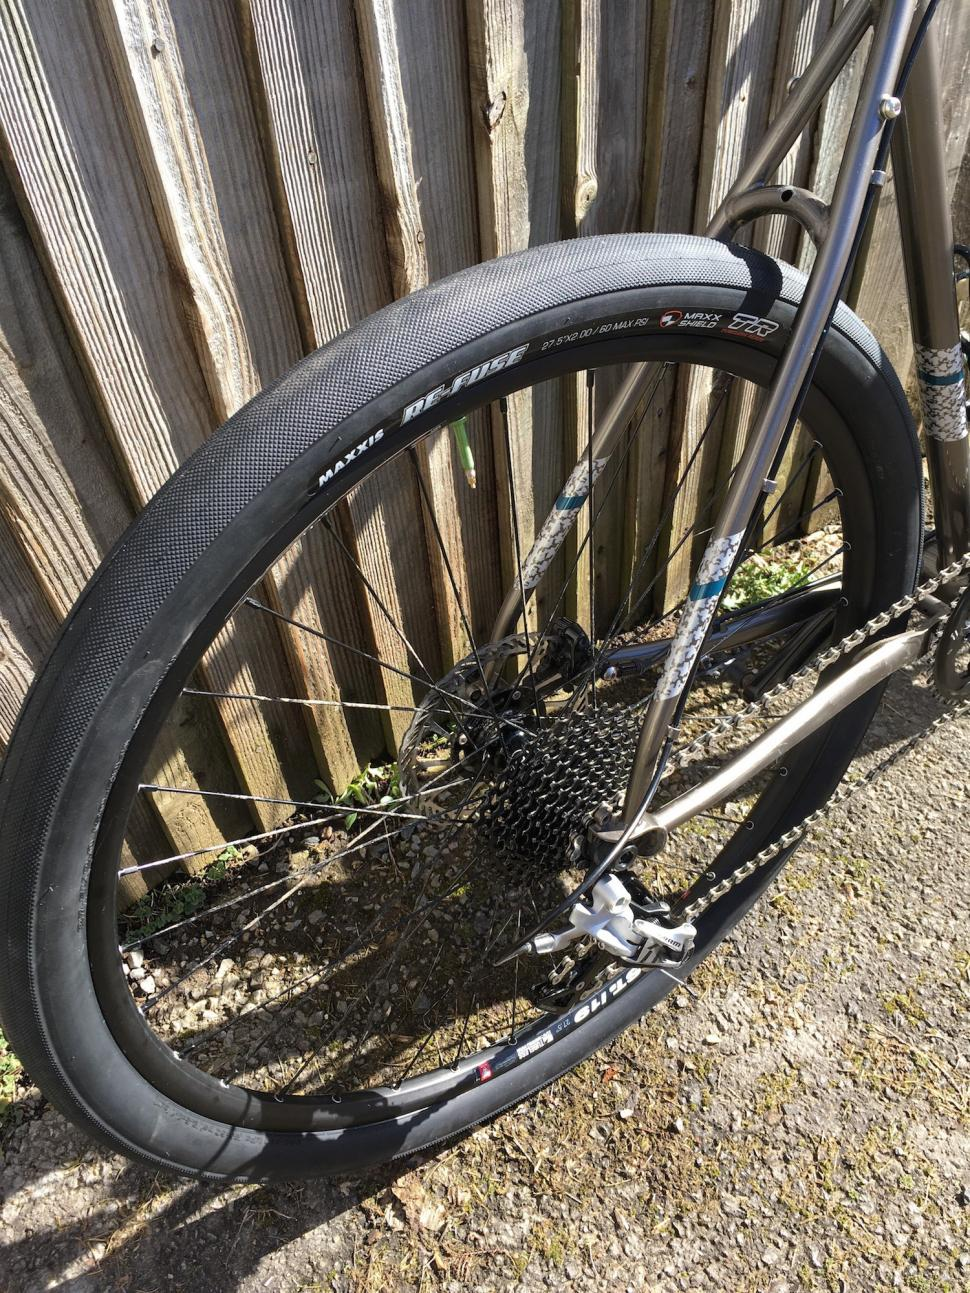 27 Best R Black Tarot Deck In Process Images On: Review: Maxxis Re-Fuse 27.5 X 2.0 Gravel Tyre